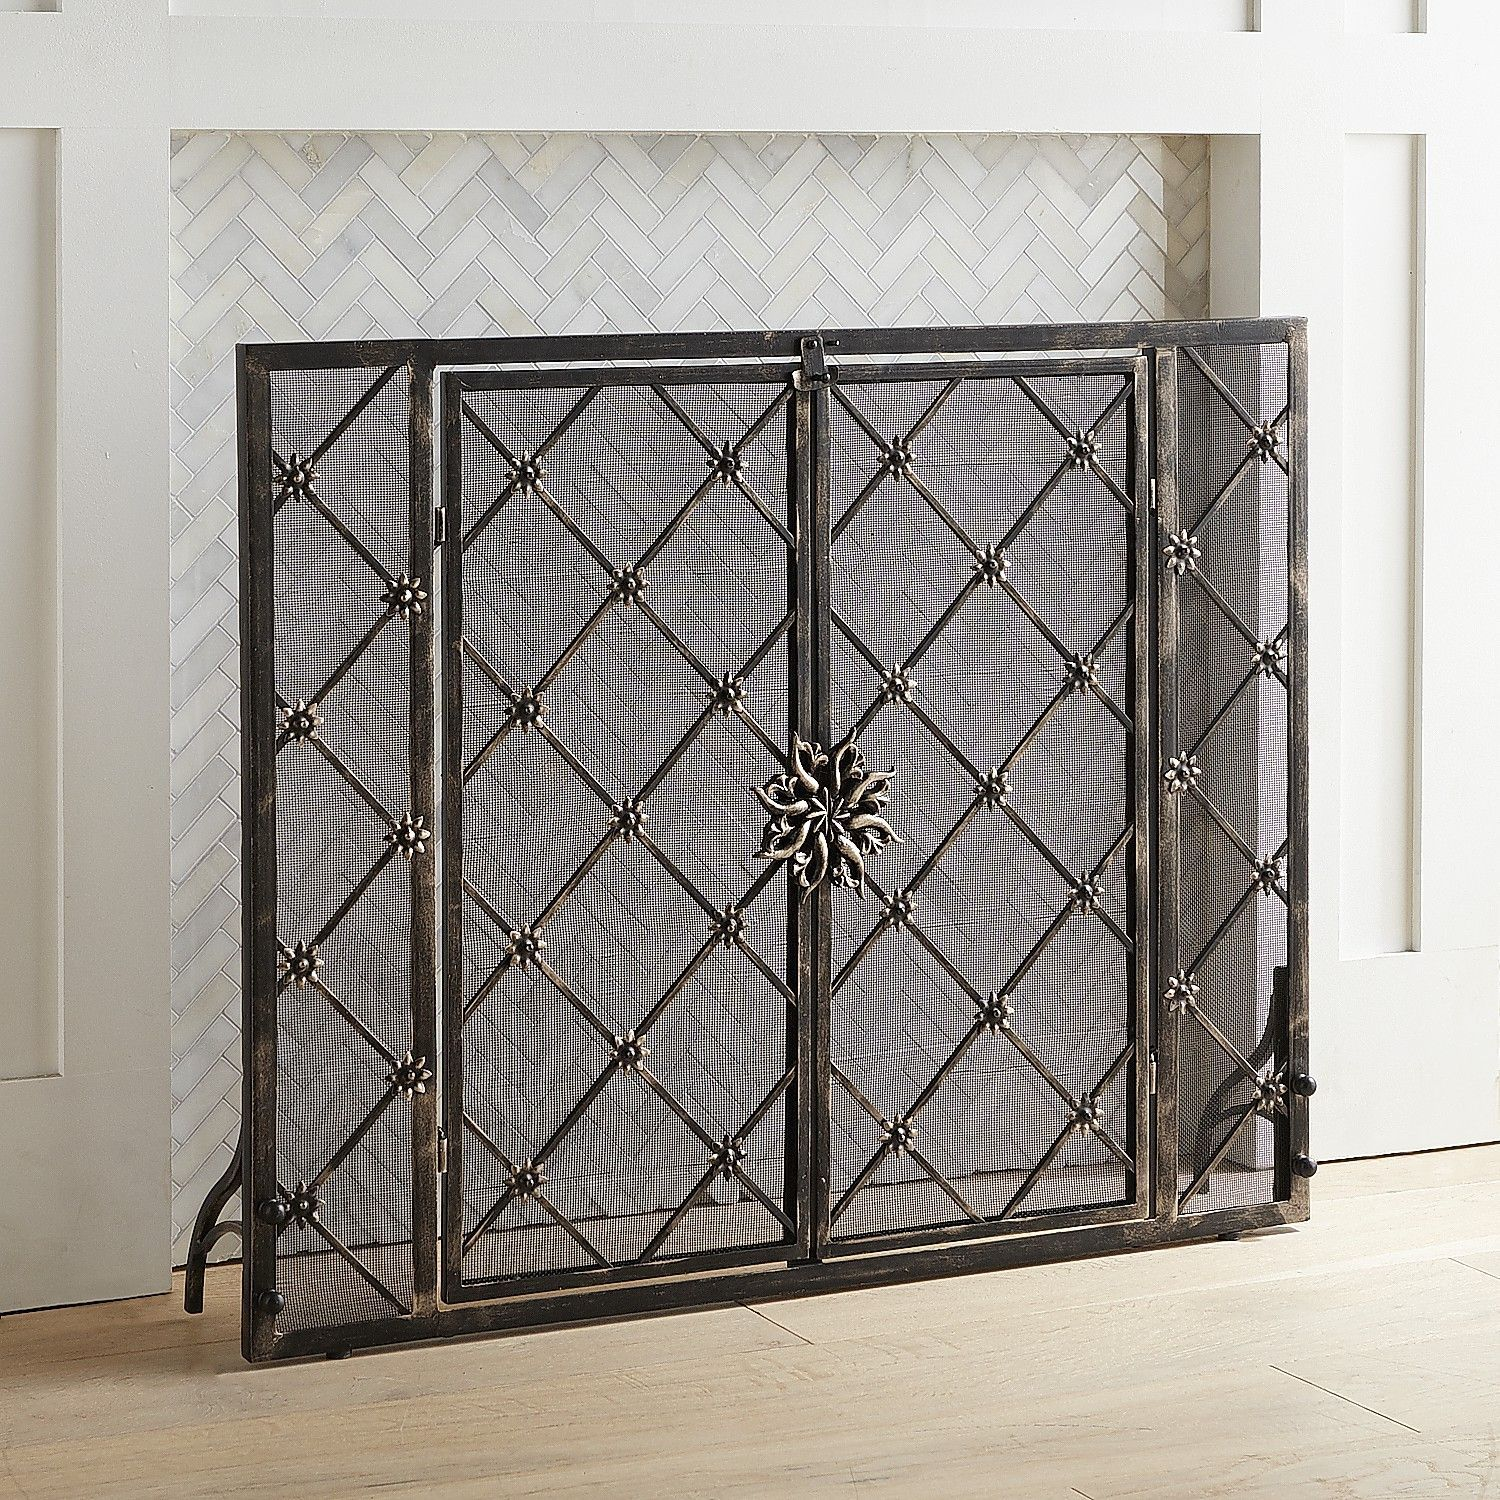 Wrought Iron Fireplace Doors Awesome Junction Fireplace Screen In 2019 Products